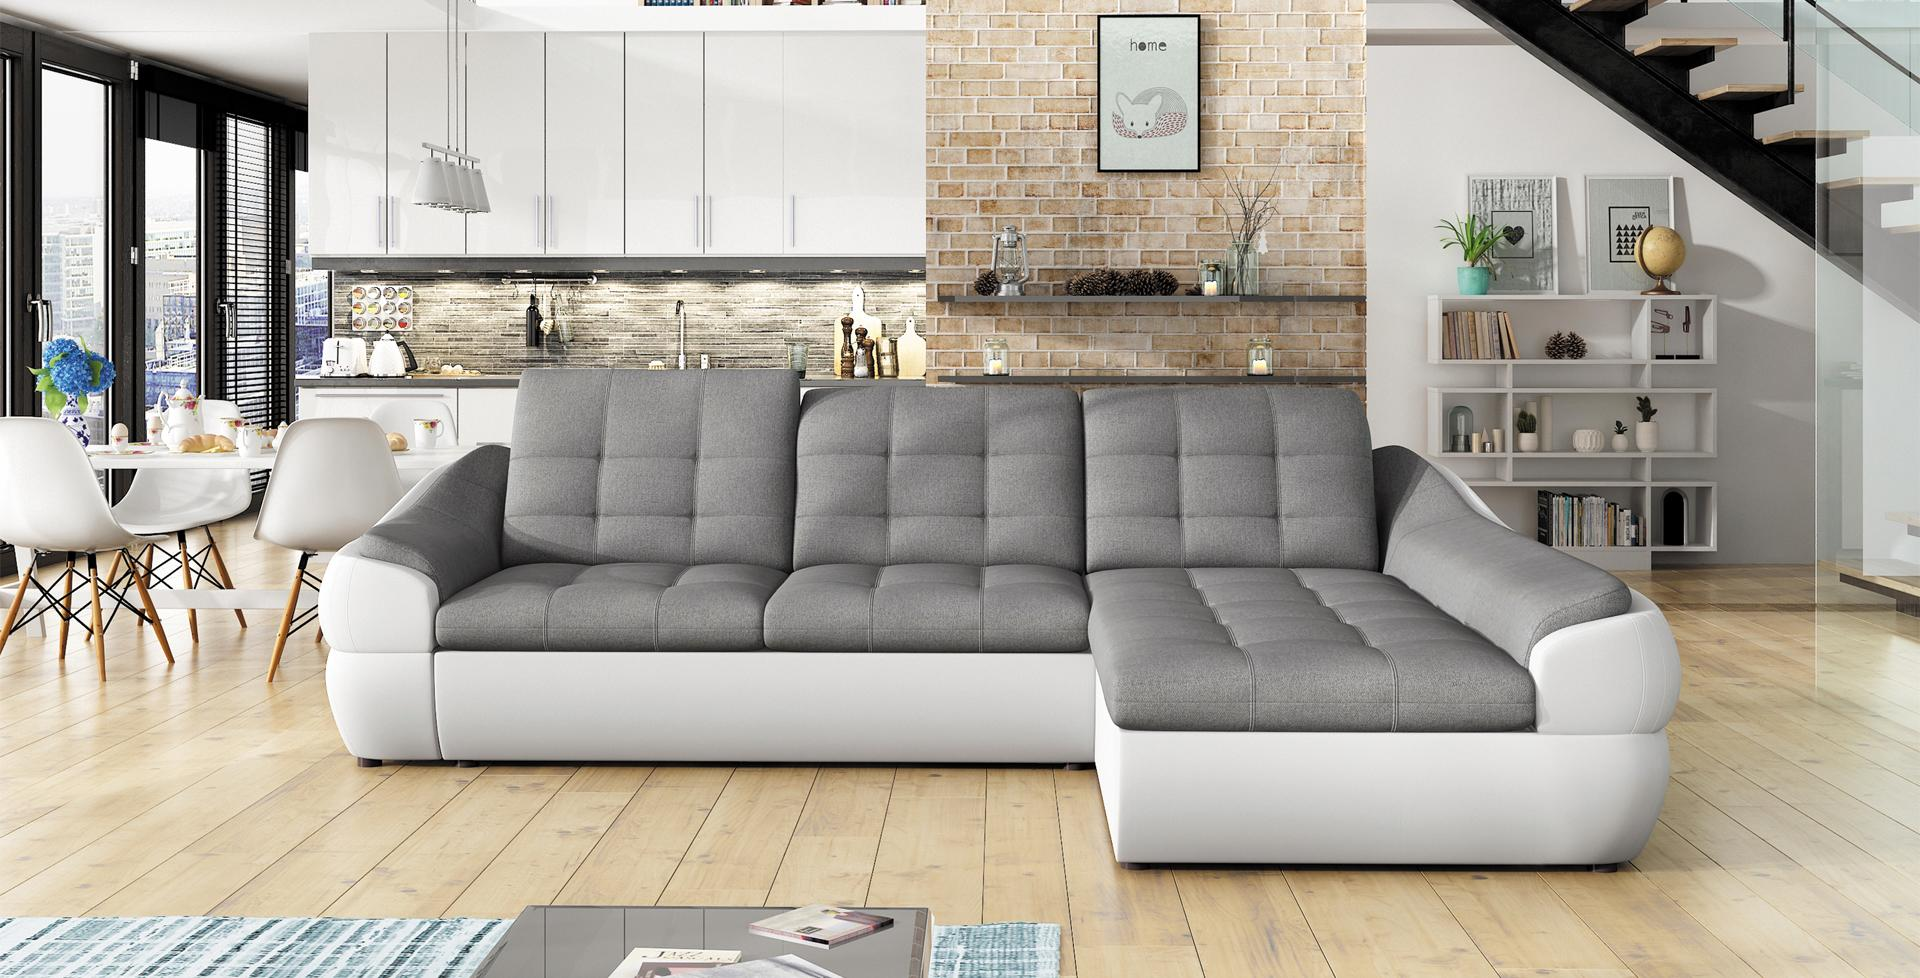 sofa schlafsofa designer sofa mit bettfunktion bettkasten ecksofa couch neu infinity mini. Black Bedroom Furniture Sets. Home Design Ideas